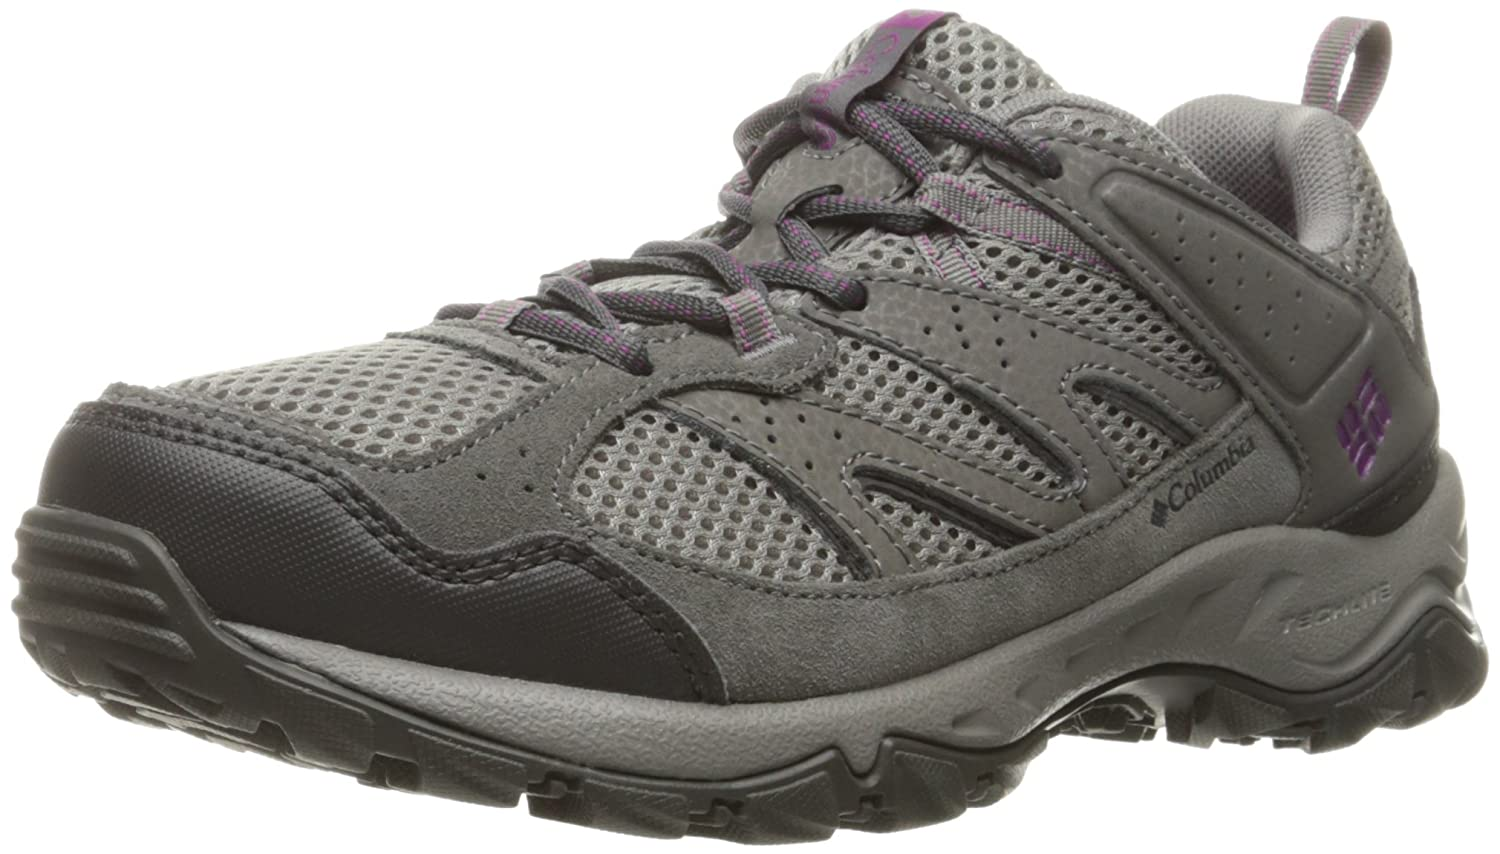 Columbia Women's Plains Ridge WMNS Low Hiking Shoes B0183PFCP6 5 M US|Light Grey/Intense Violet